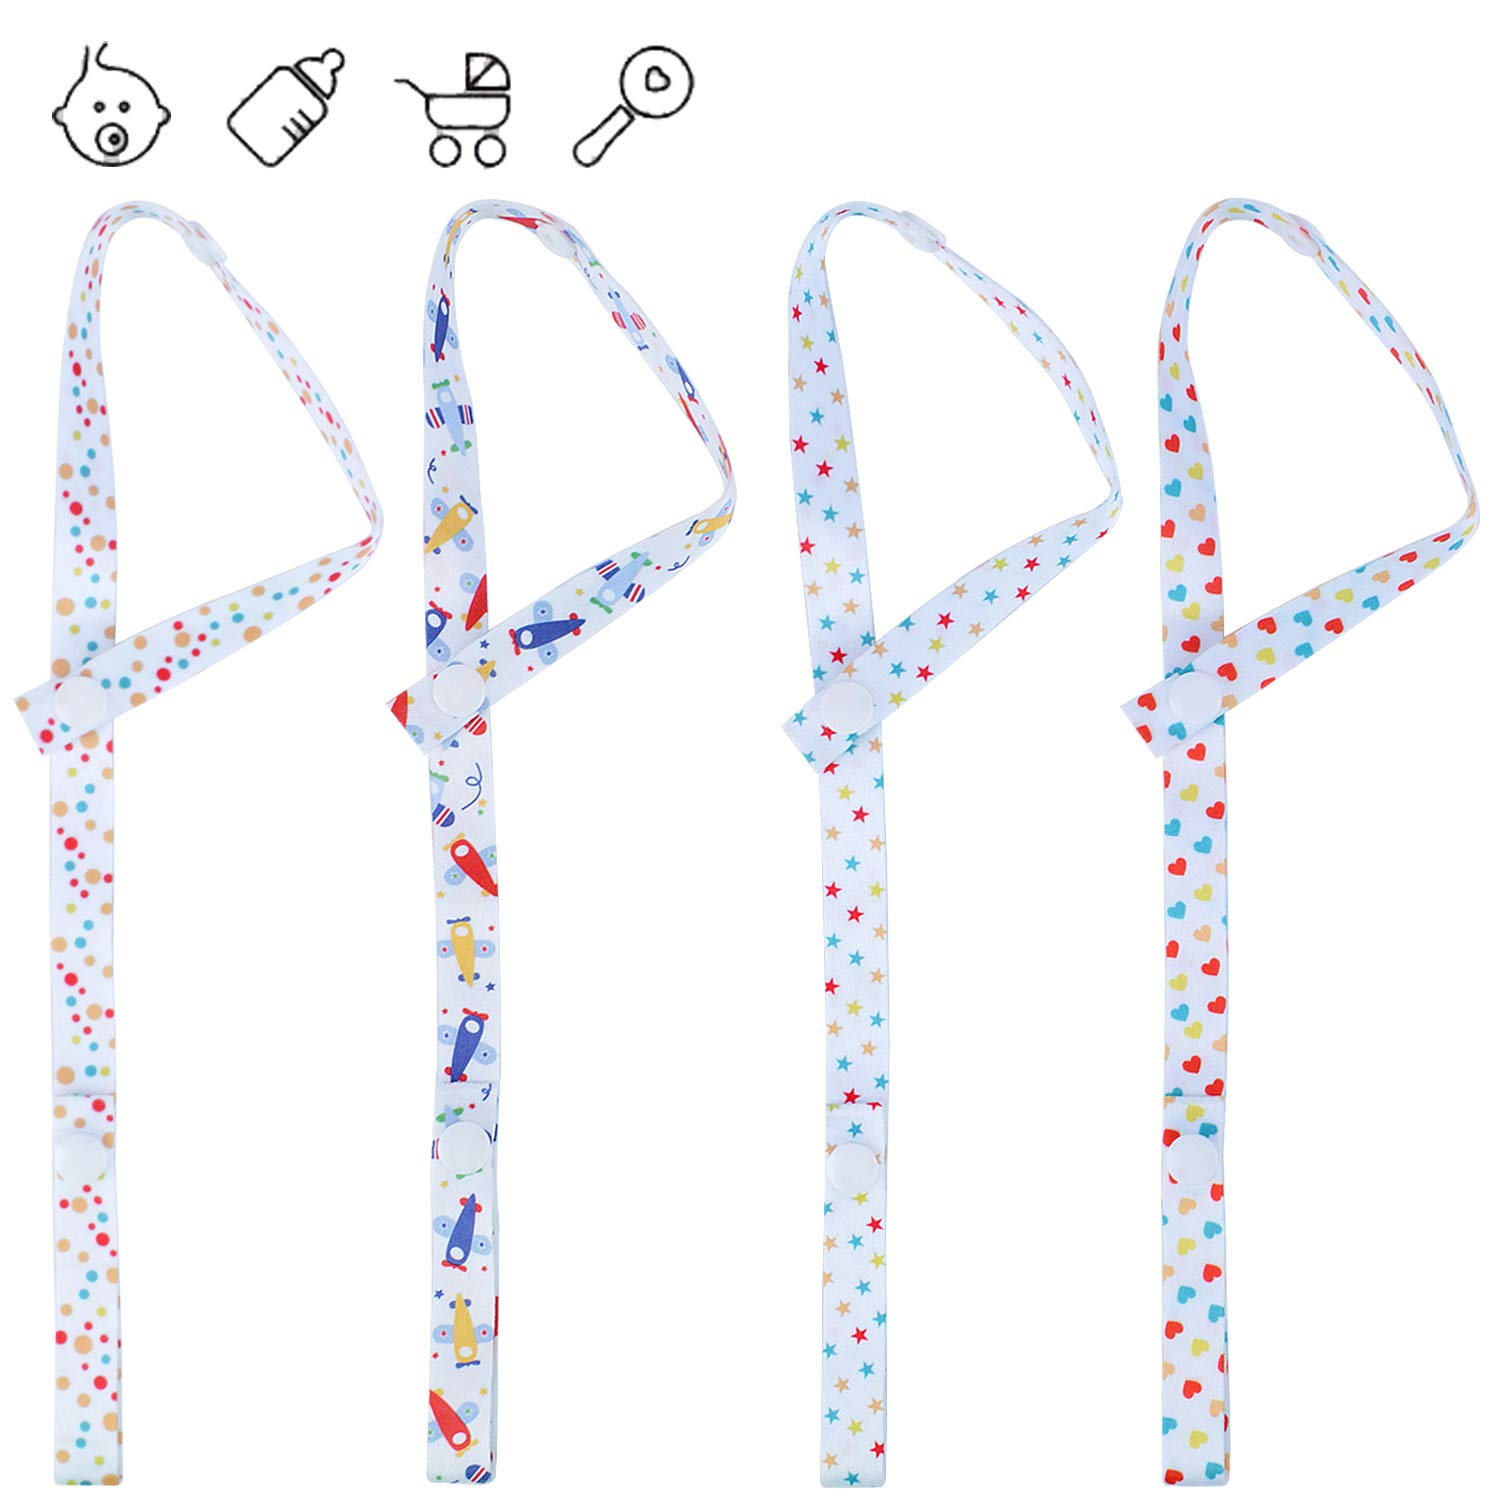 4 Pieces BPA Free Baby Toy Straps Anti-Drop Bottle Sippy Cup Pacifier Holder Straps for Pram, Stroller and Pushchair euhuton